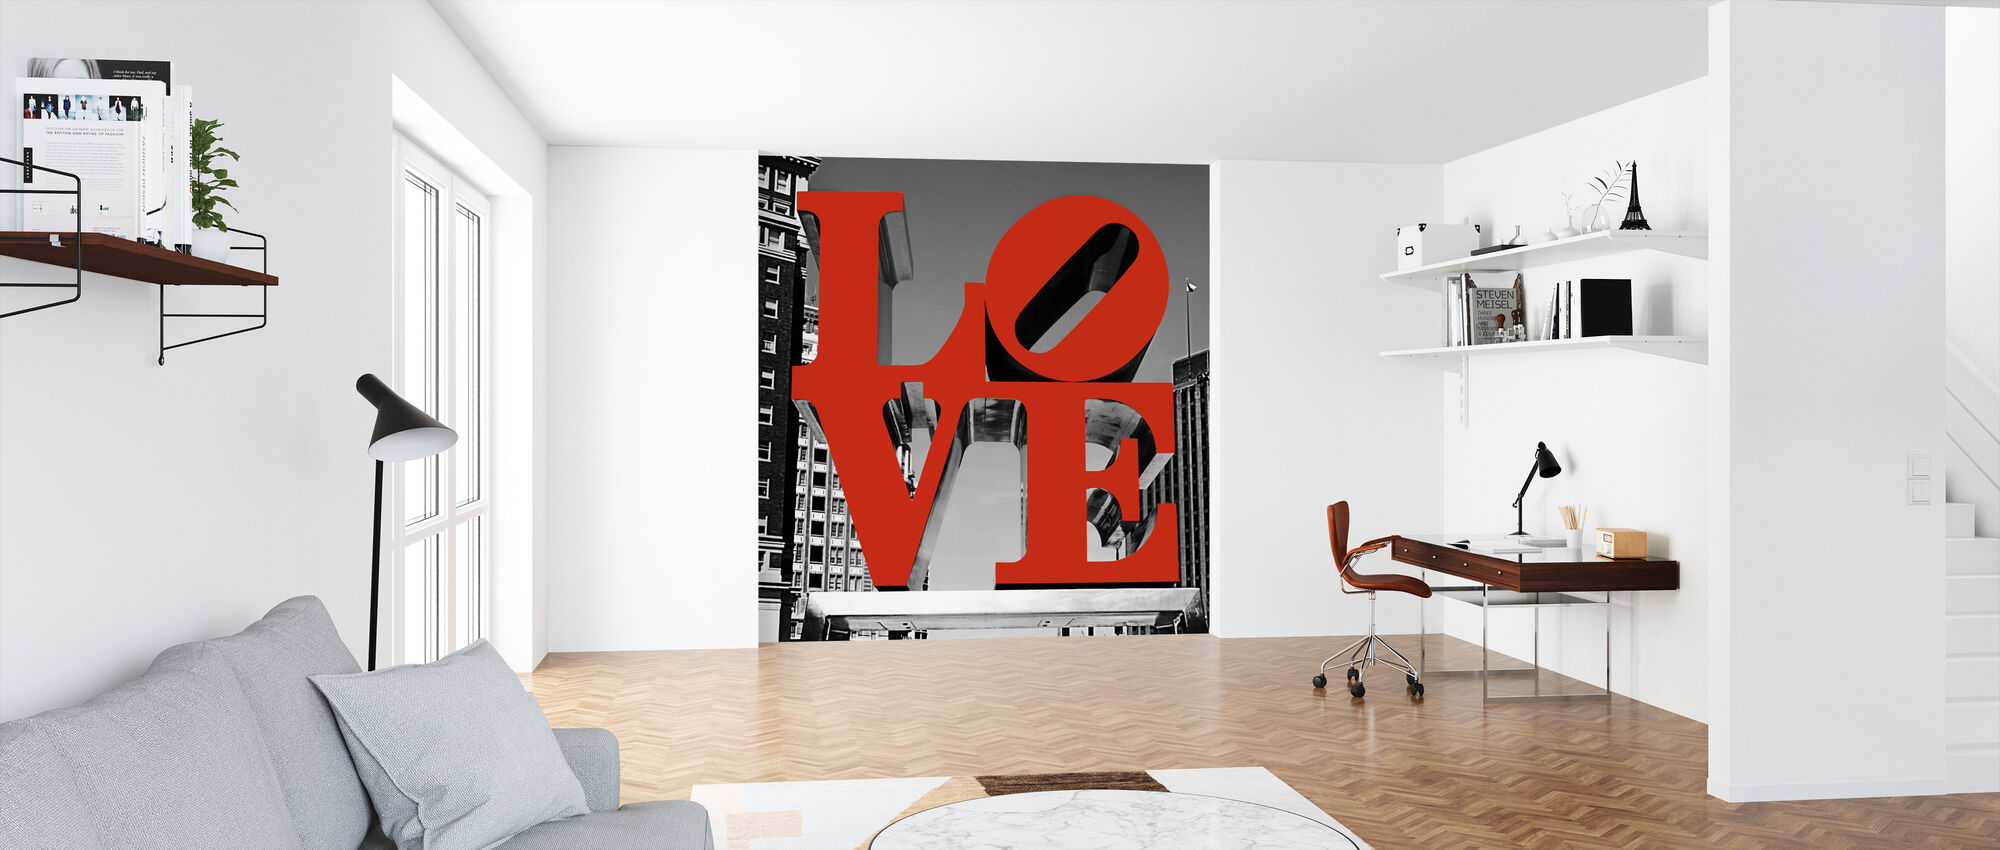 Love Philly - Wallpaper - Office